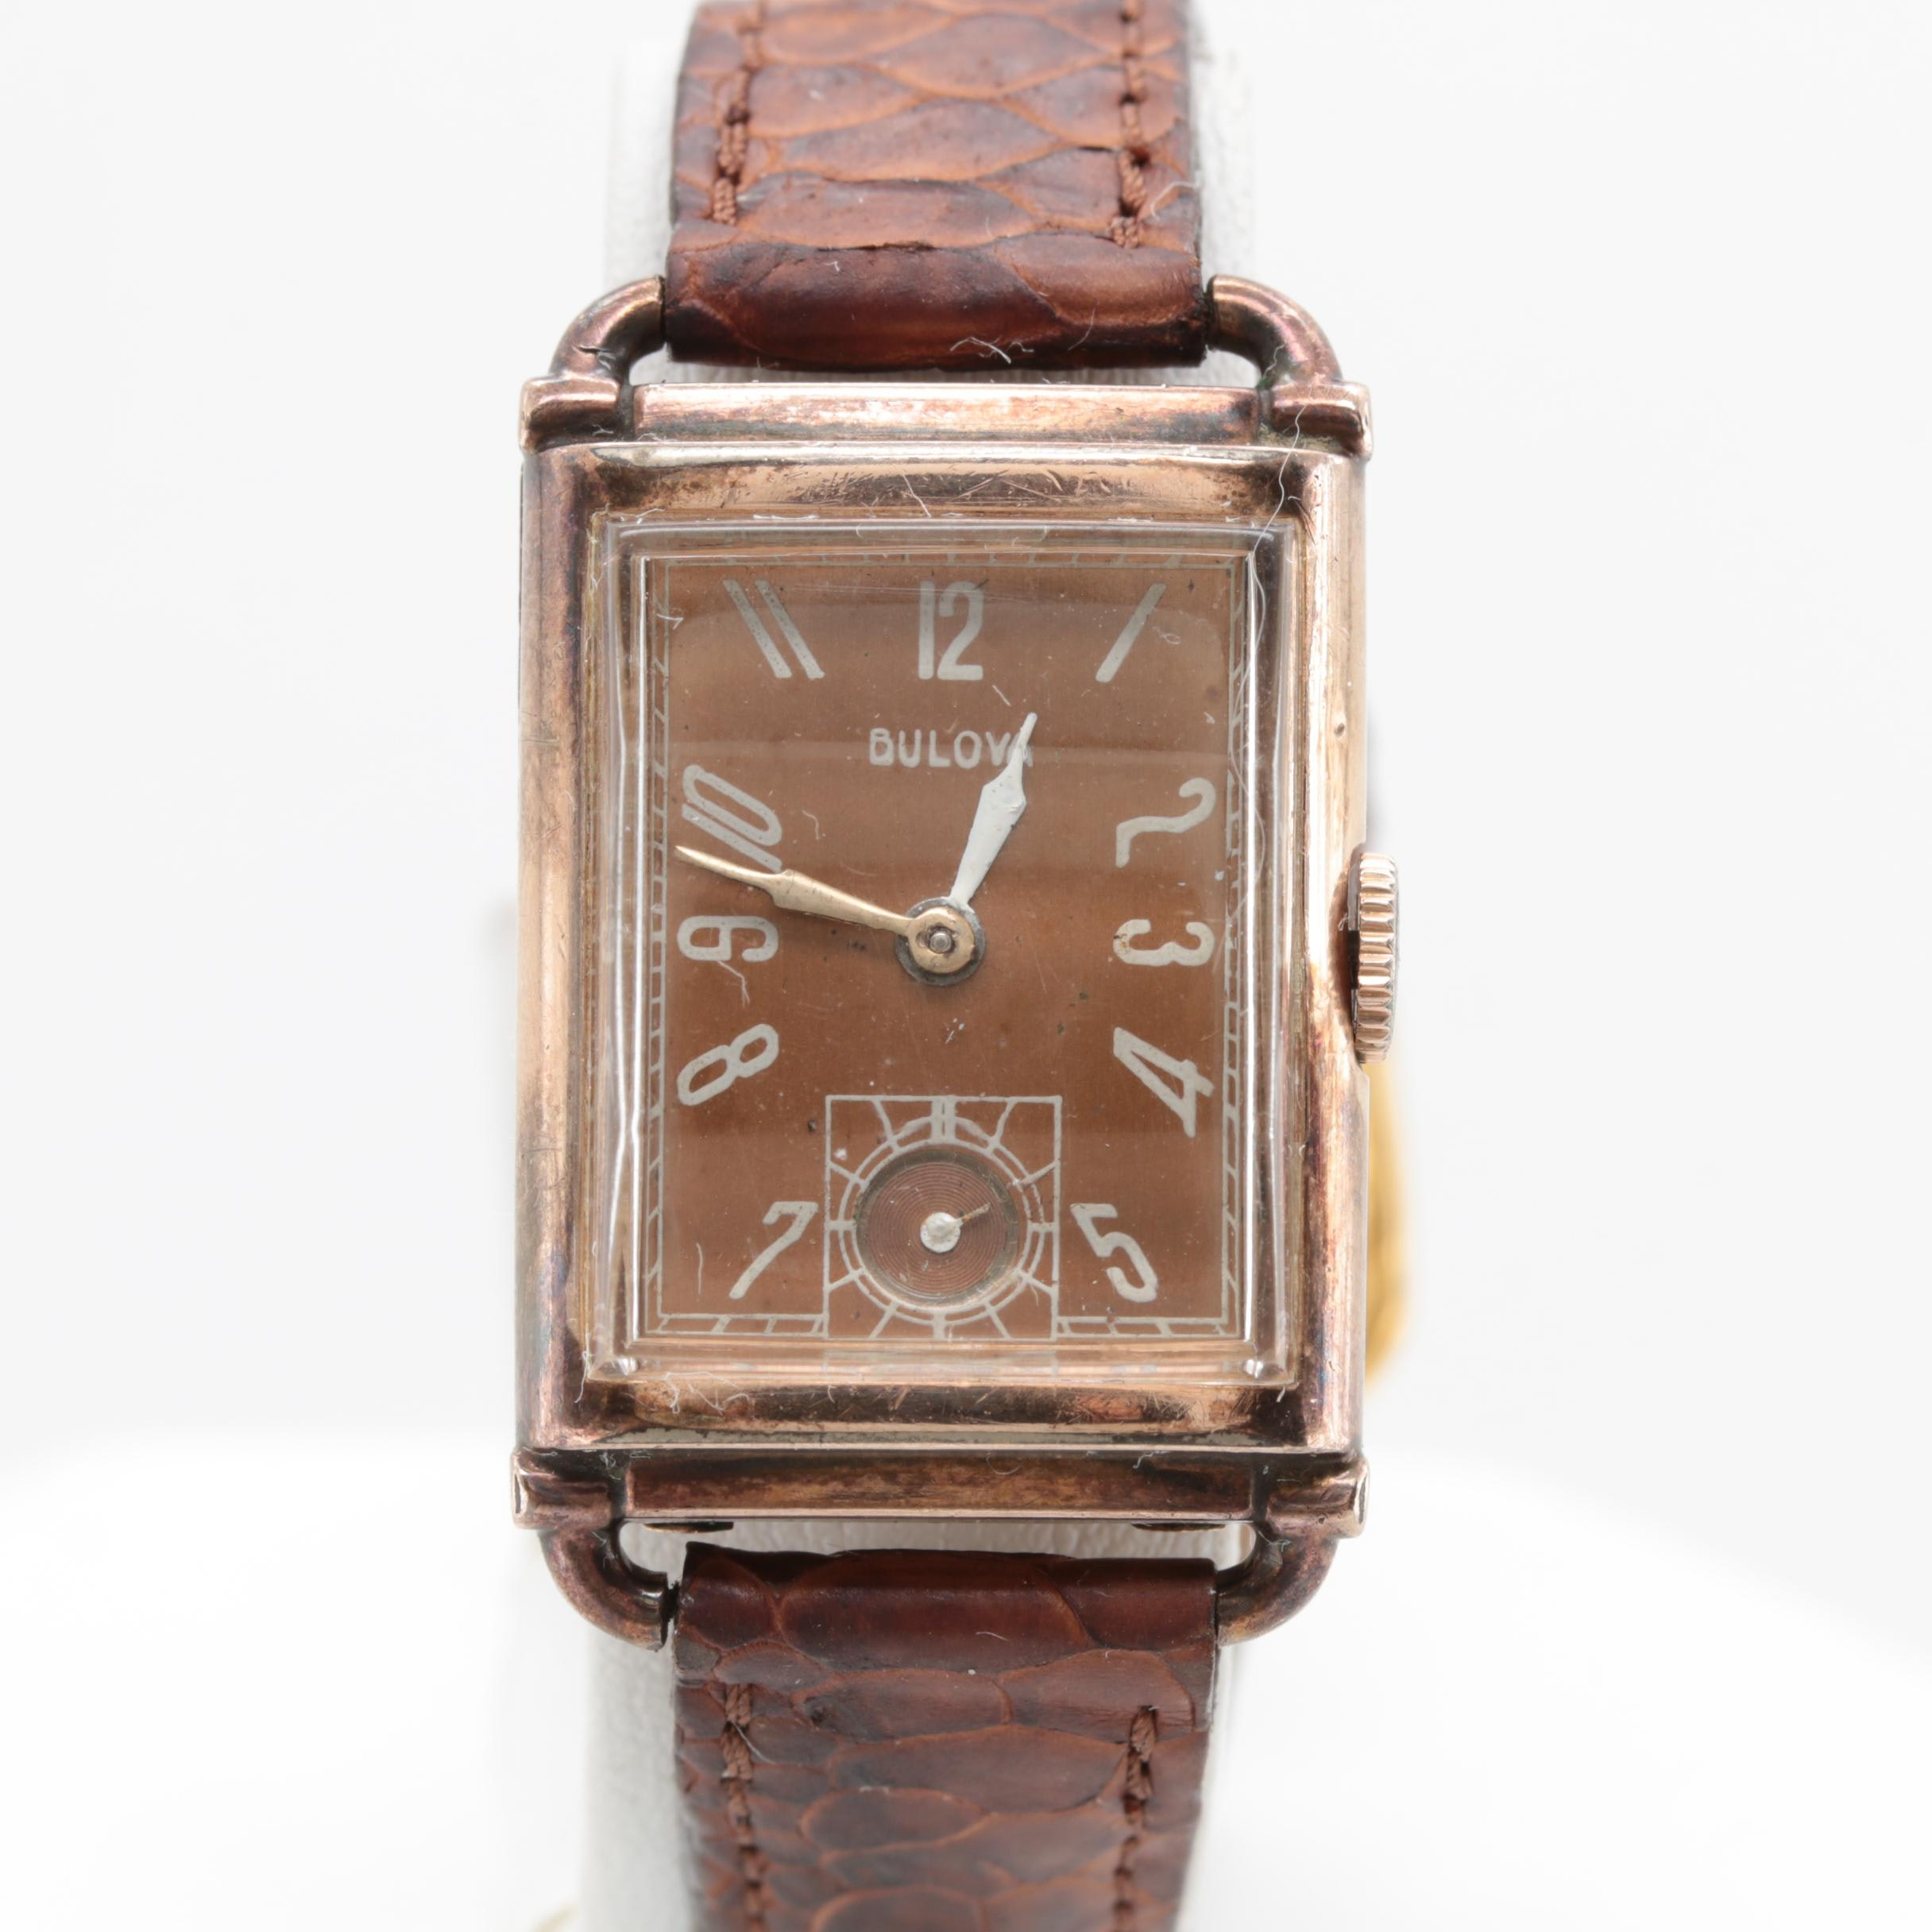 Bulova Gold Filled Leather Wristwatch